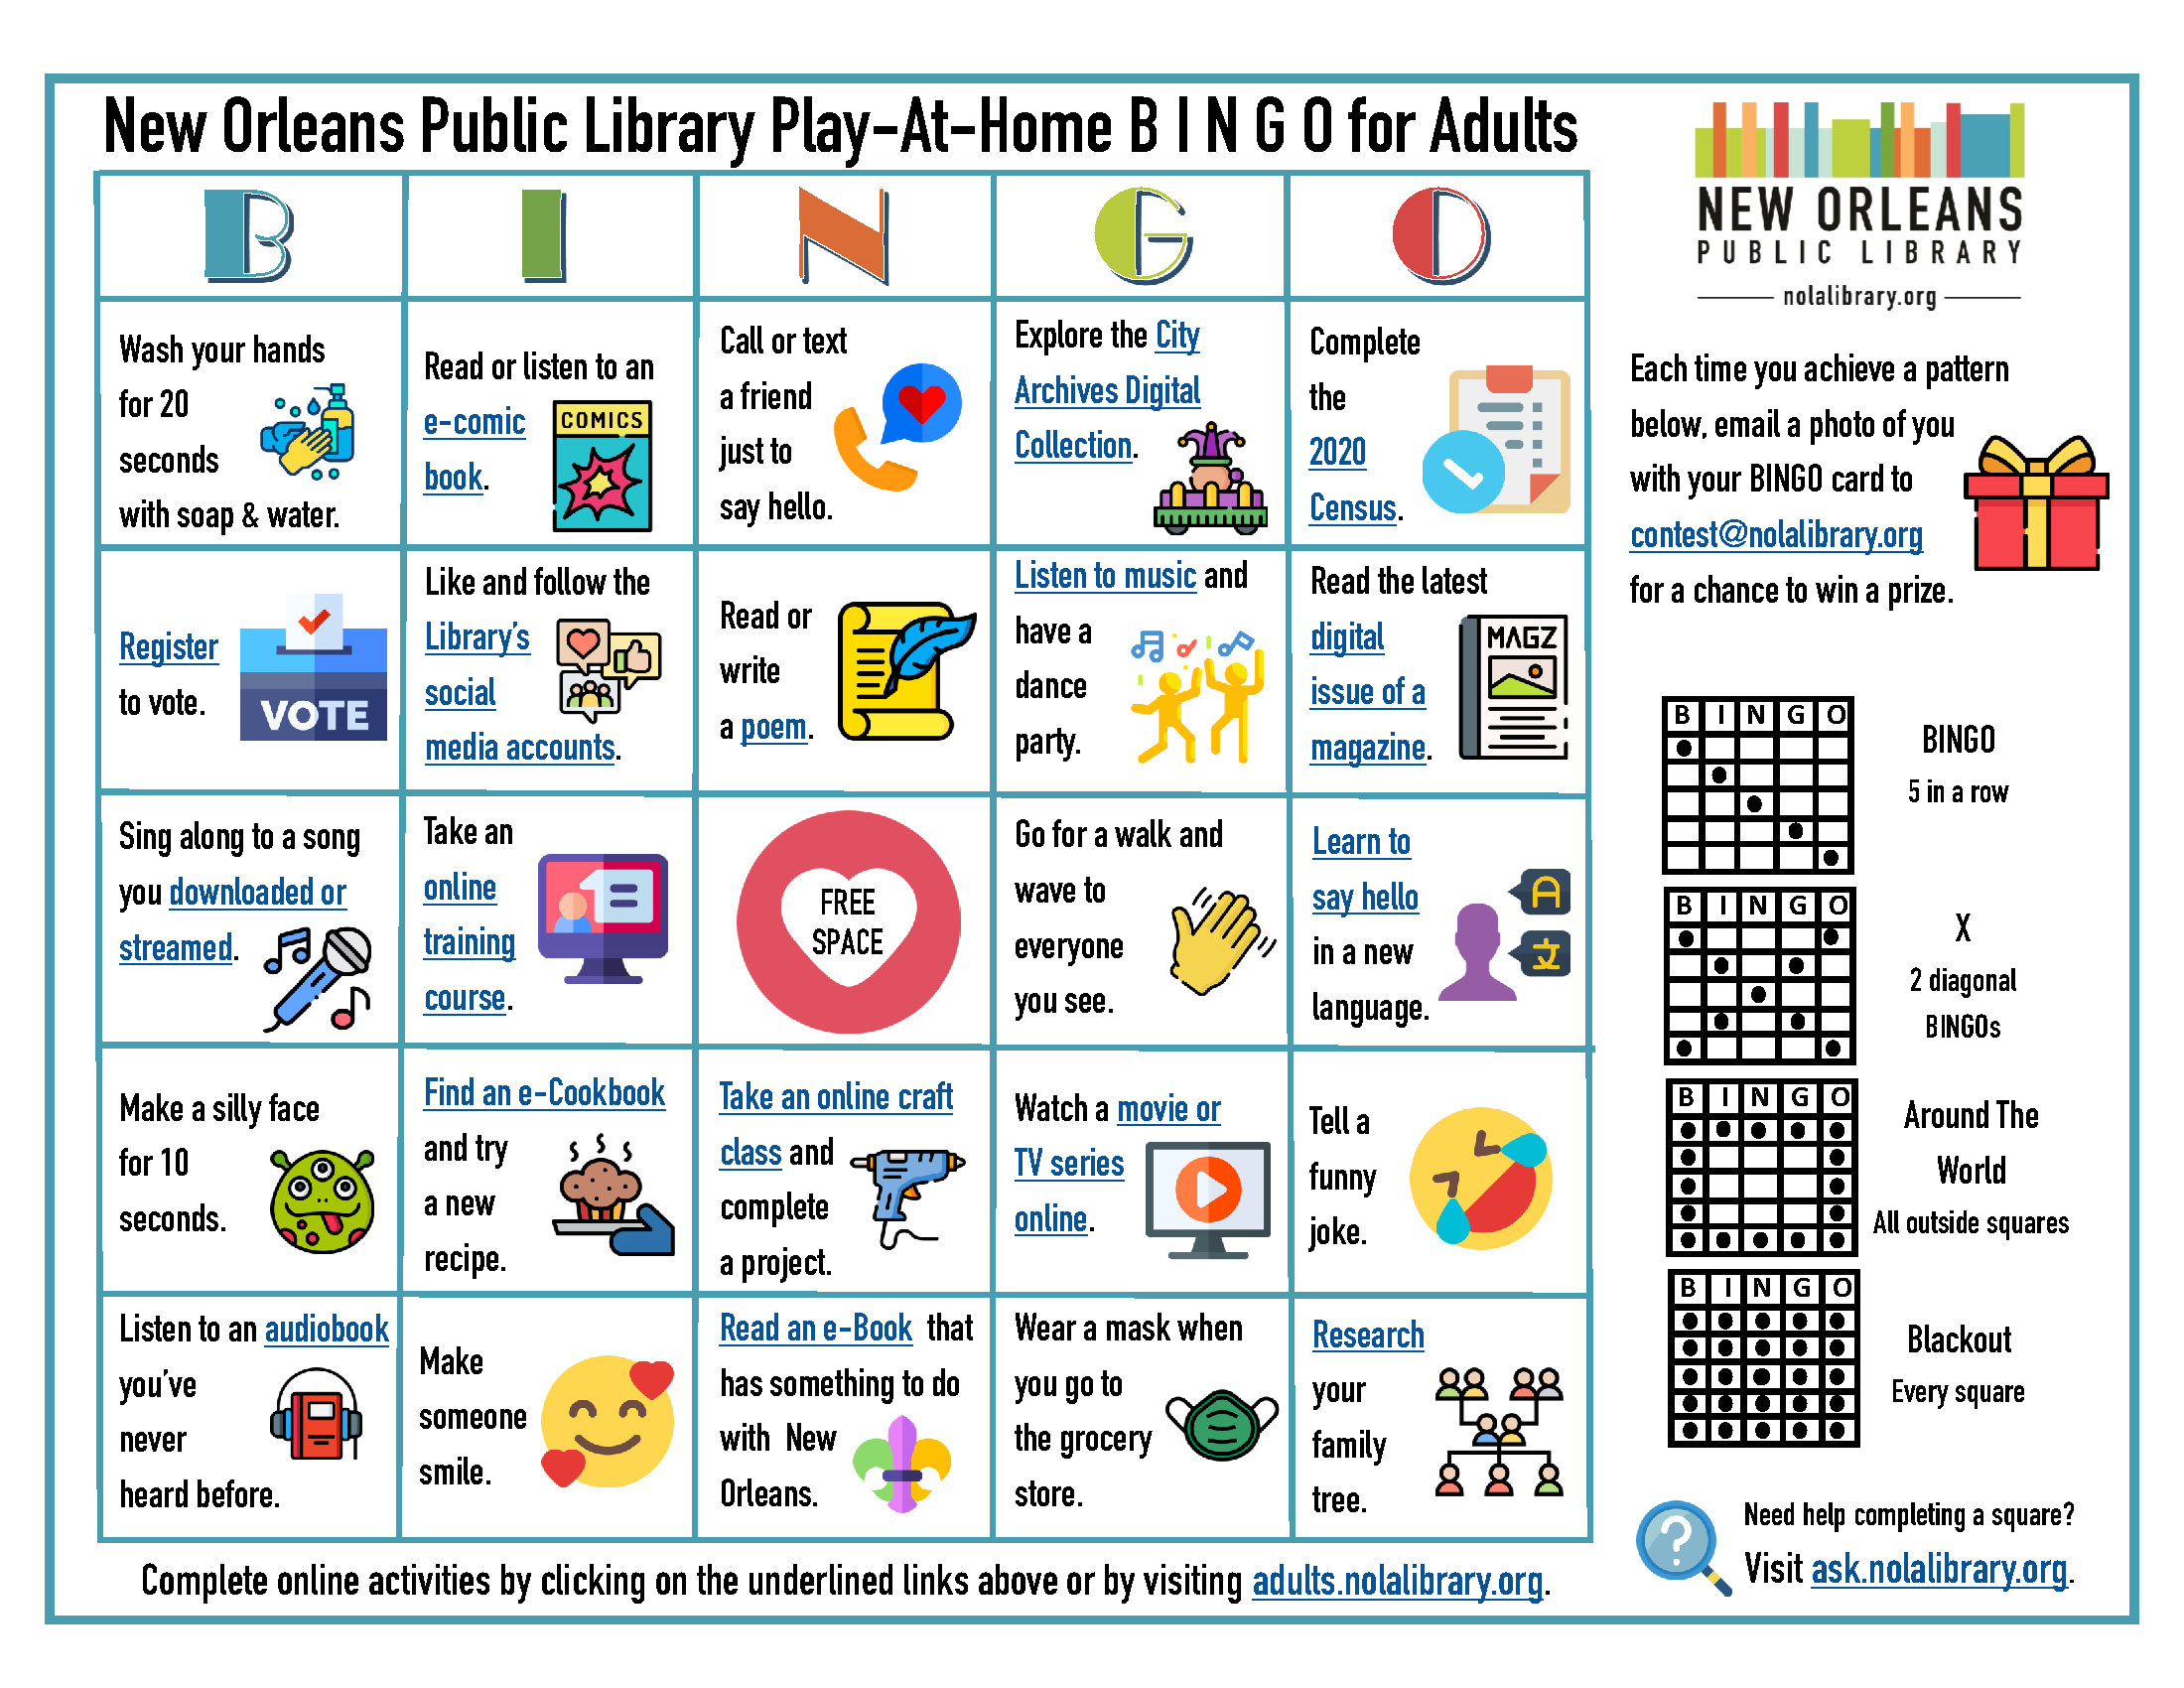 Play-At-Home Bingo for Adults